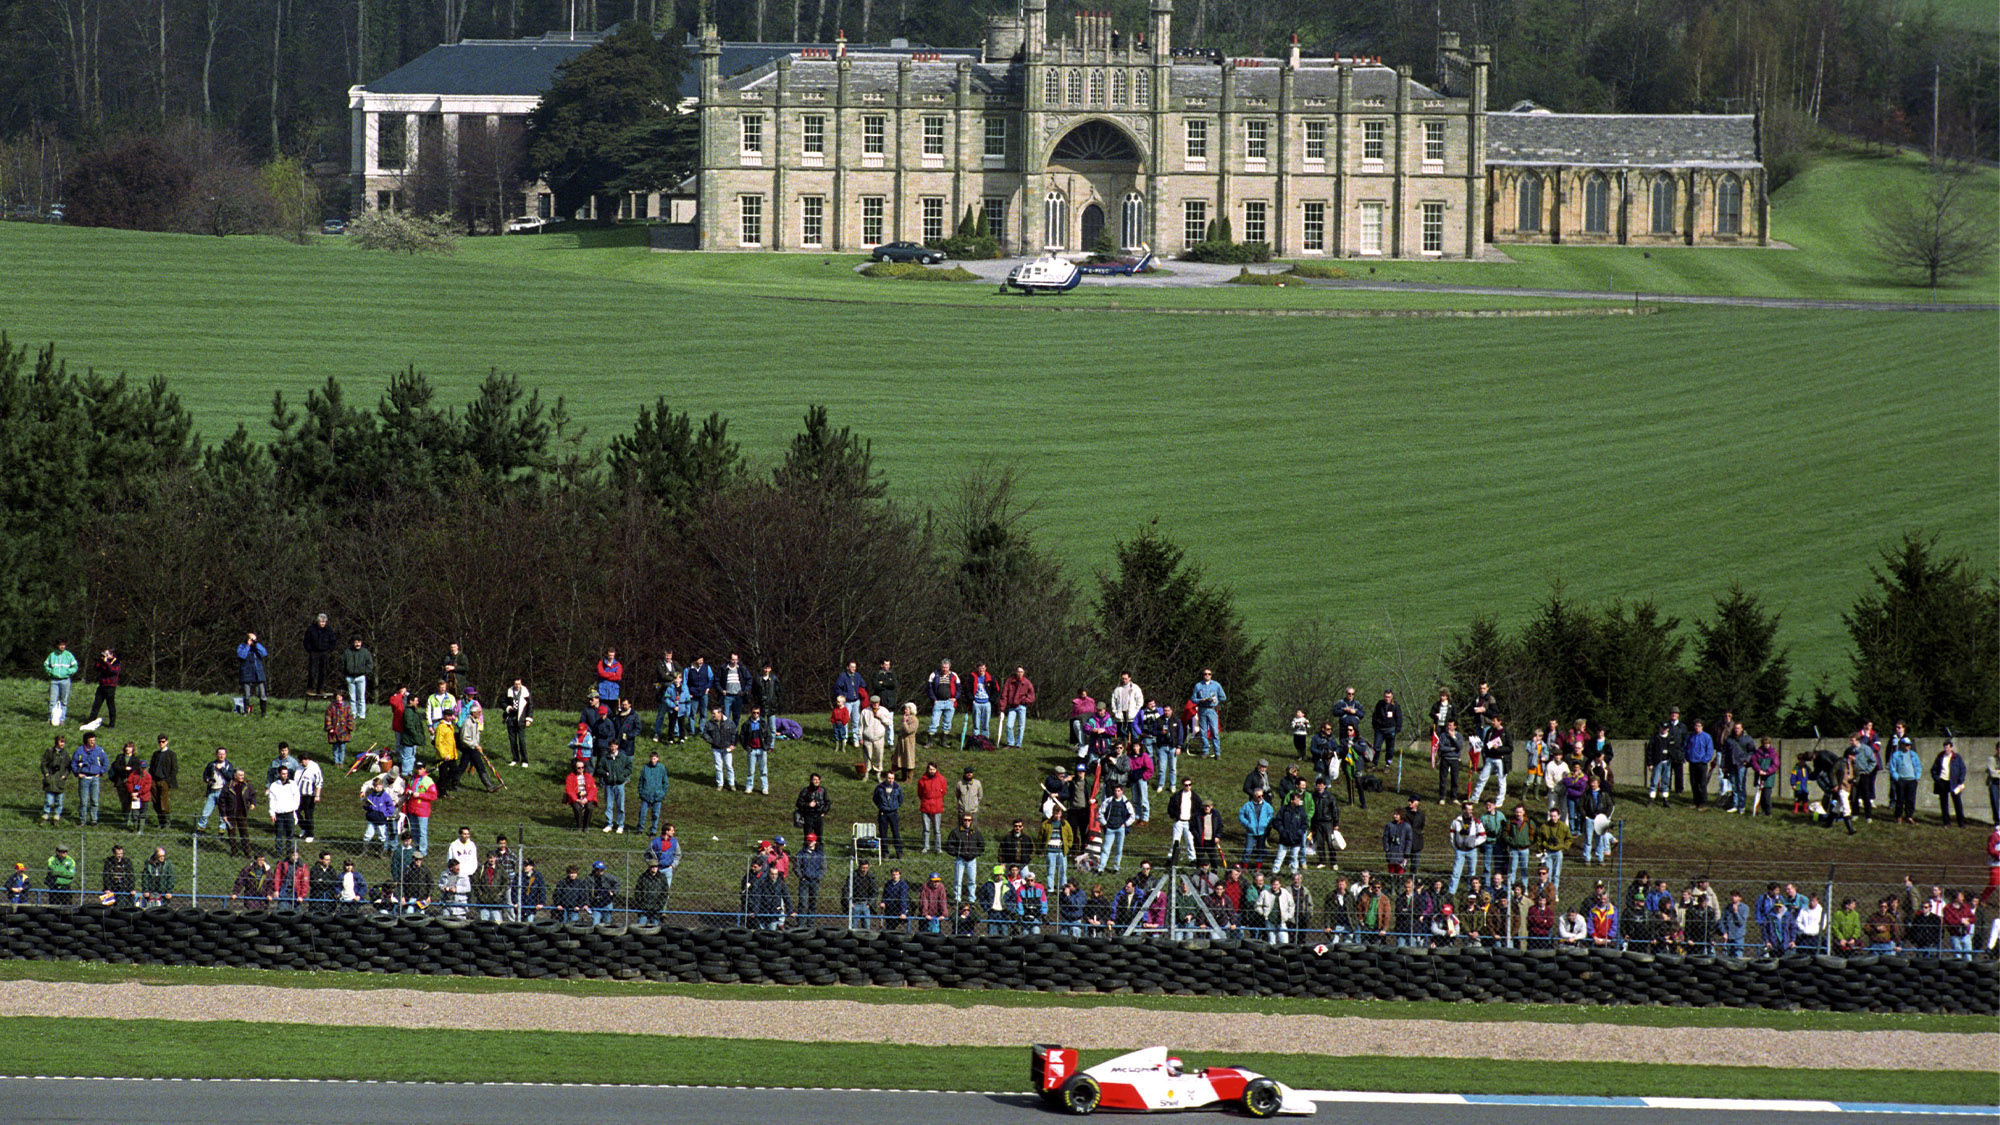 Donington Hall during the 1993 European Grand Prix weekend